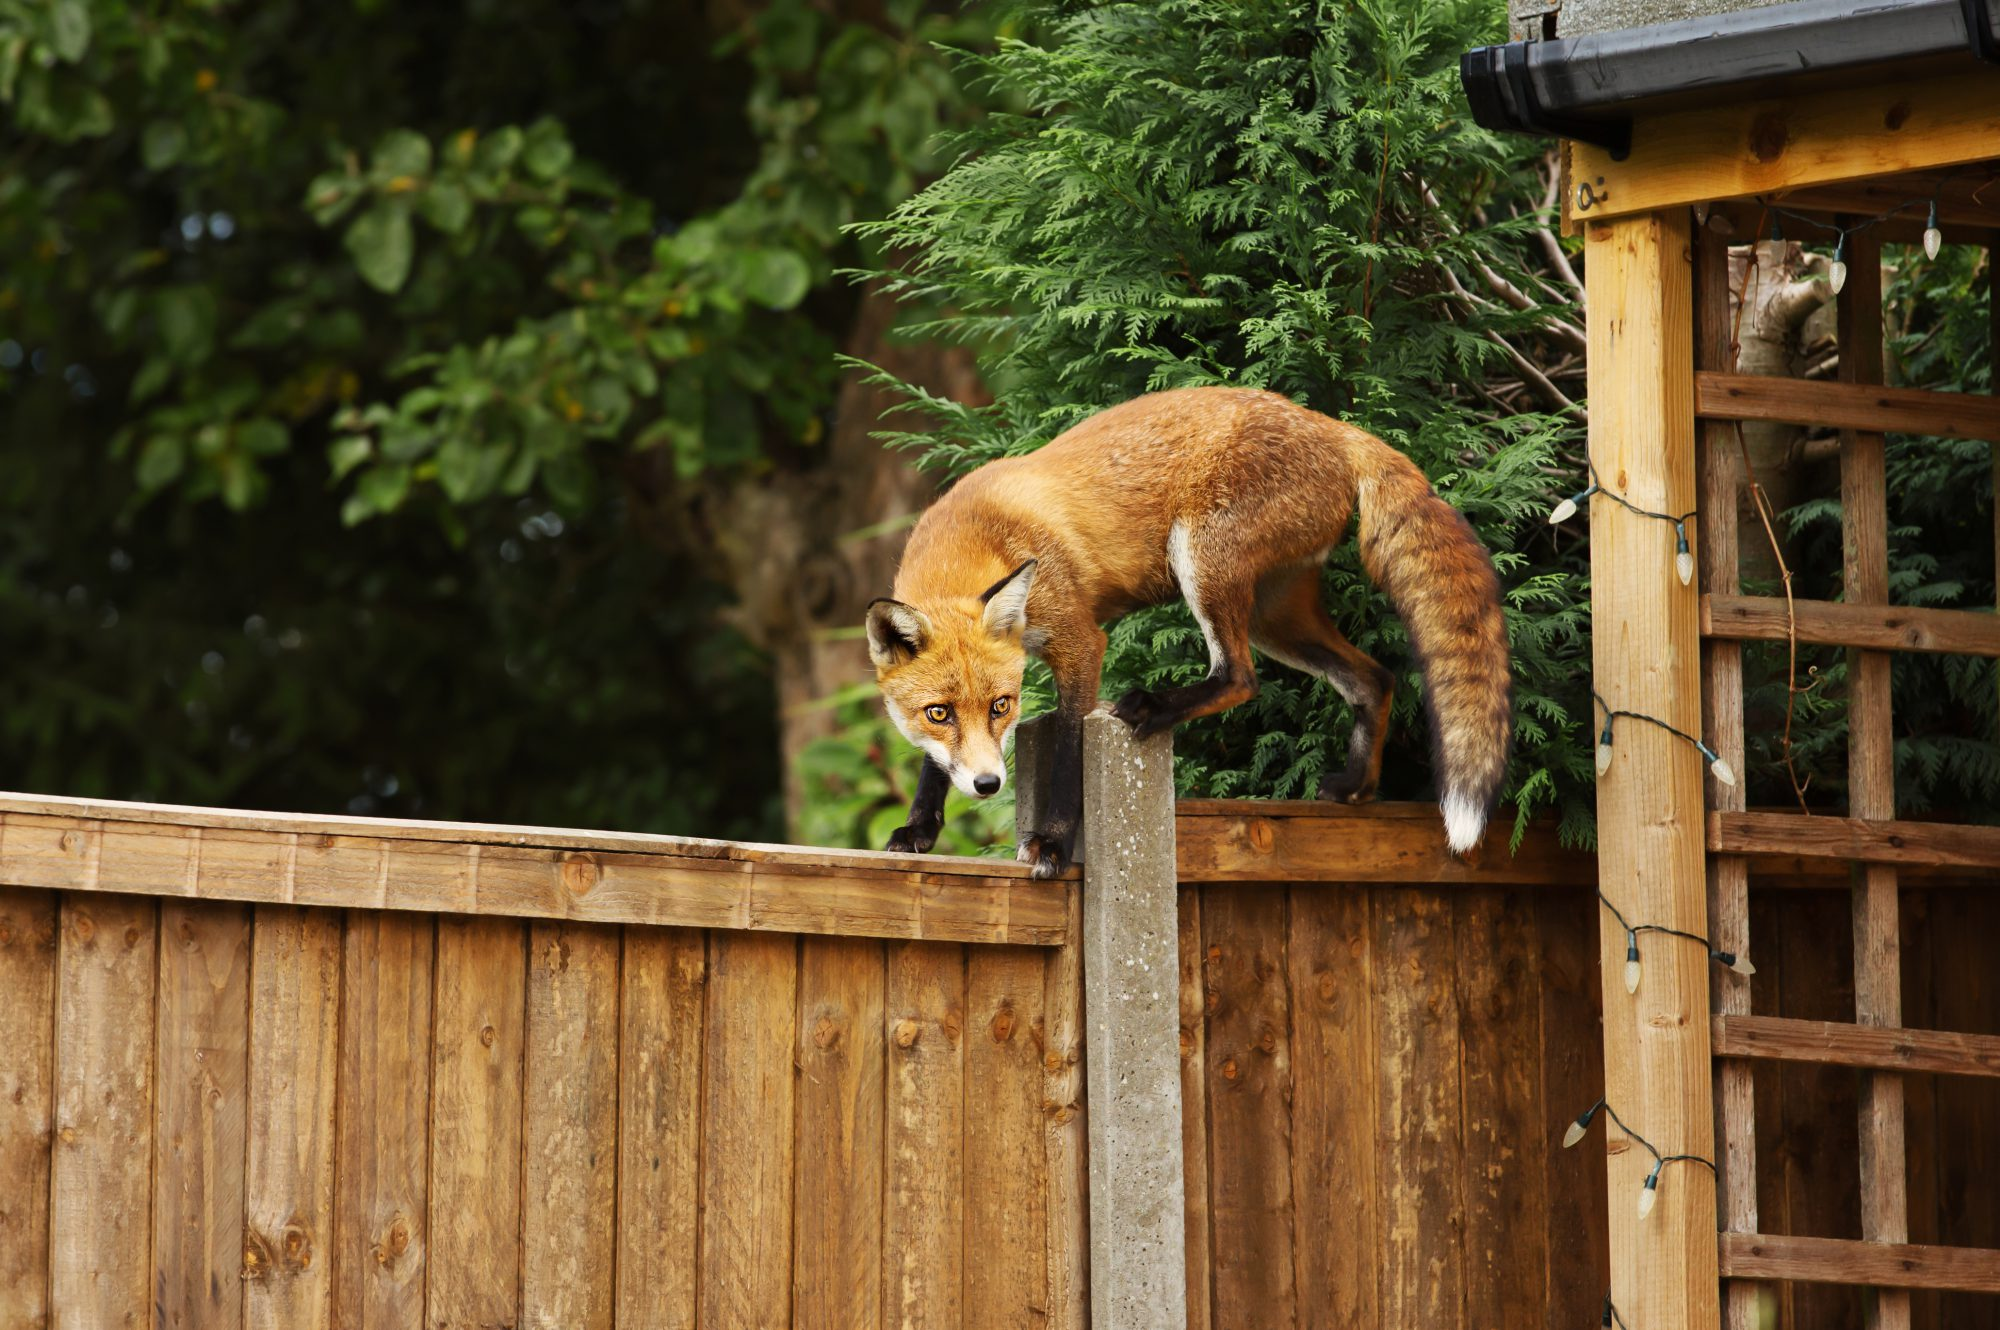 How to know if a fox has been in your garden?